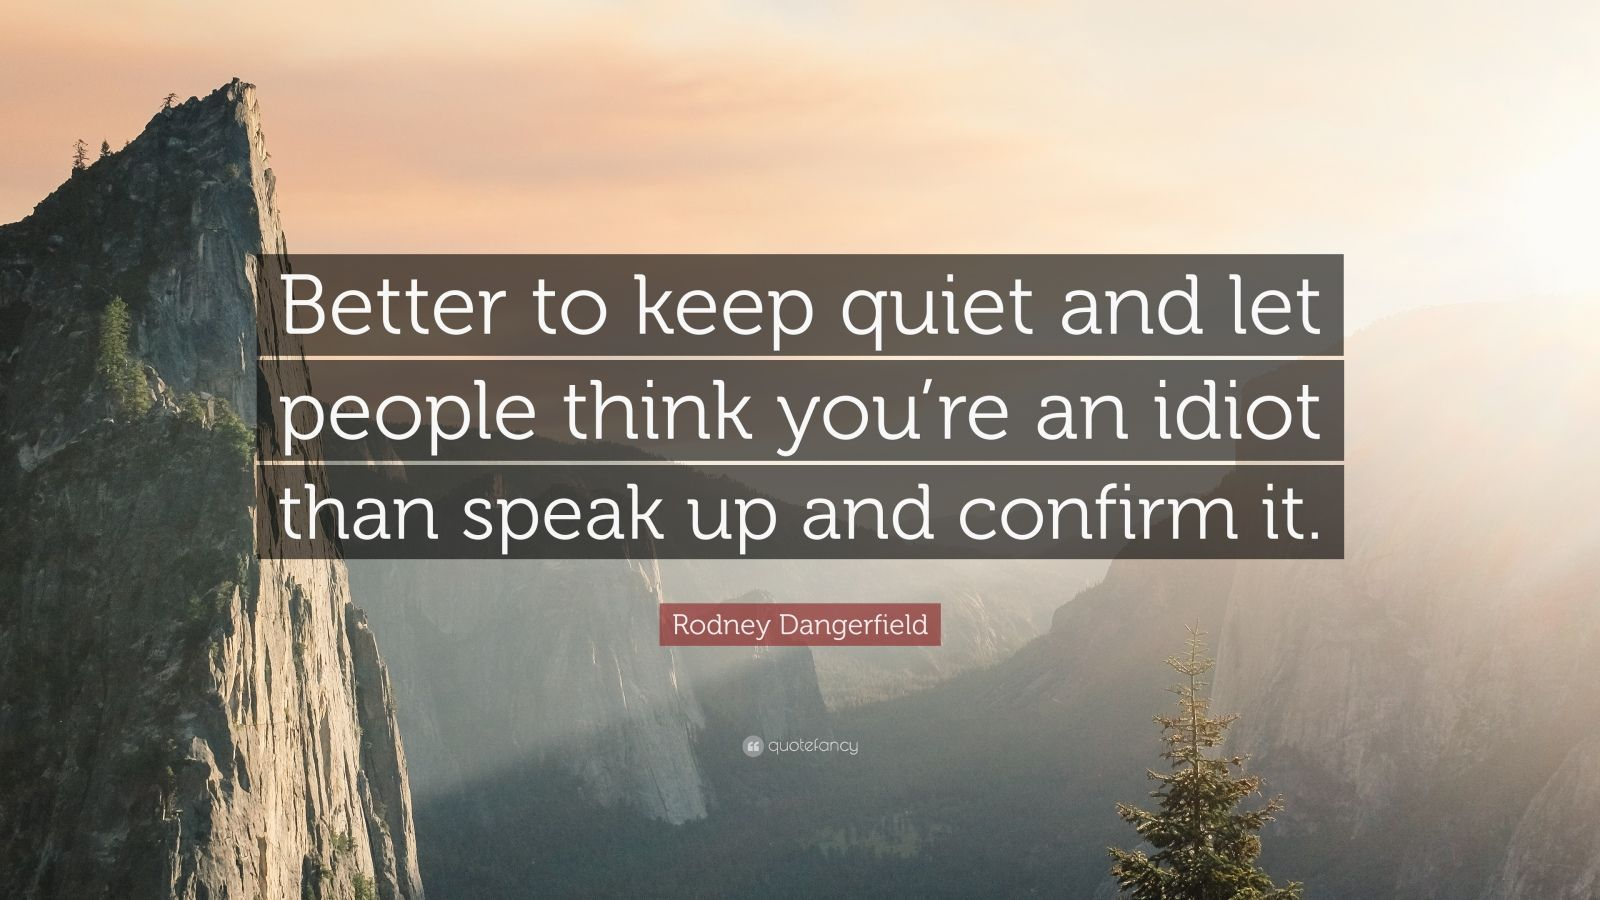 Incroyable Rodney Dangerfield Quote: U201cBetter To Keep Quiet And Let People Think Youu0027re